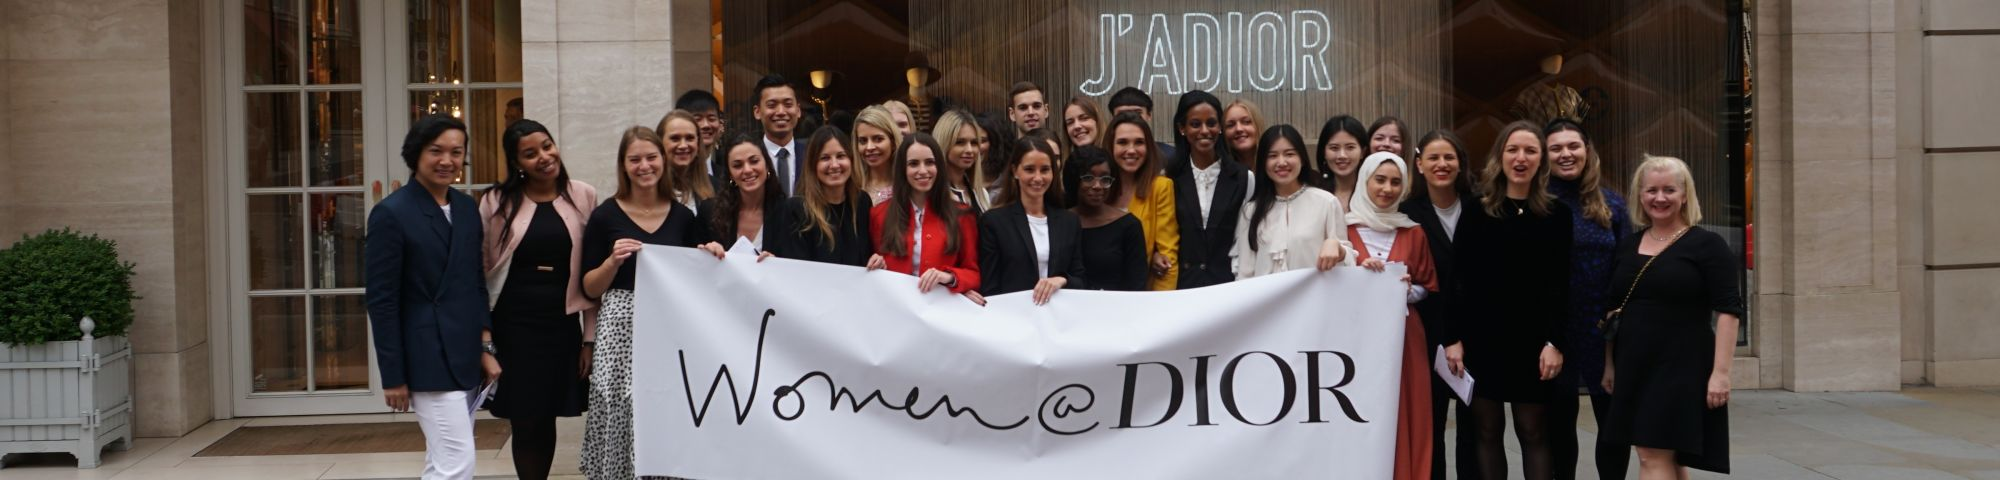 Women@Dior mentees and mentors group photo